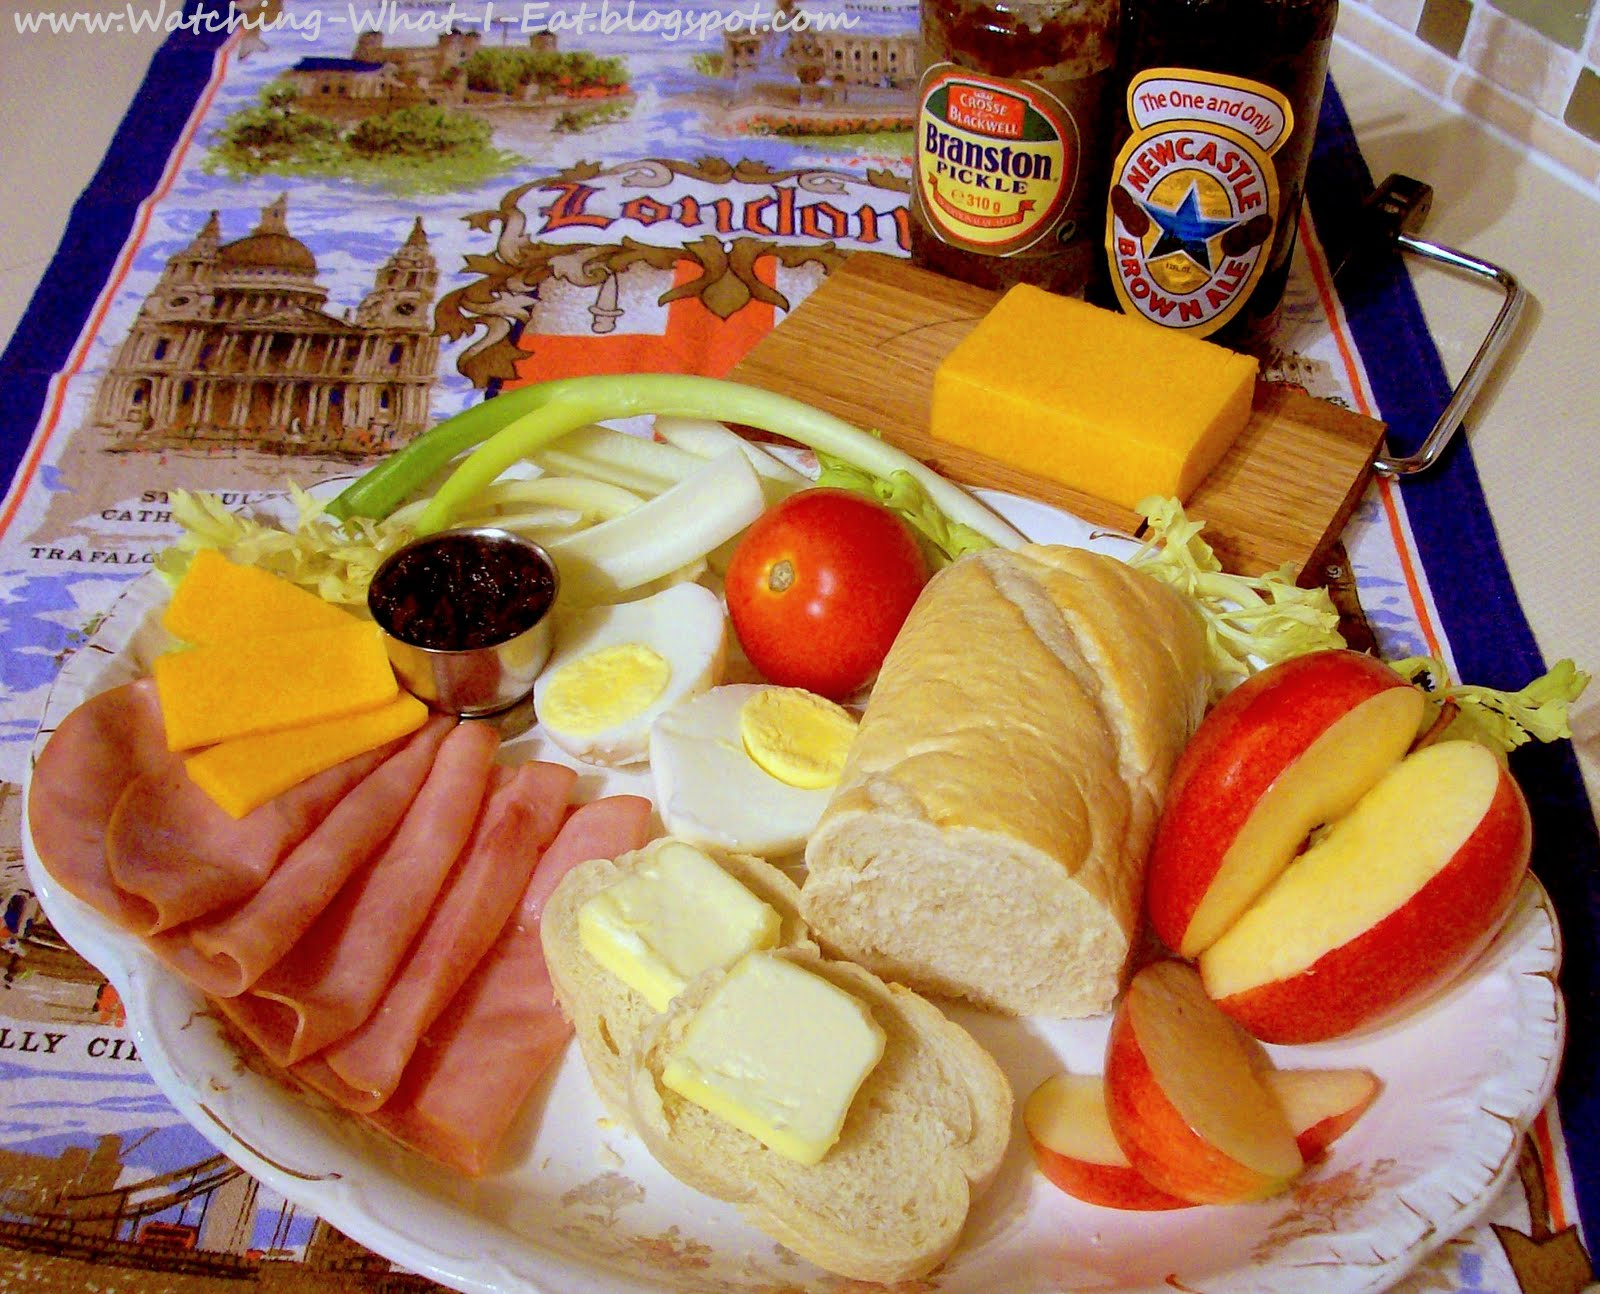 Watching what i eat ploughmans lunch how to enjoy a traditional ploughmans lunch you can create this traditional pub grub meal no matter where you are its so quick easy to make at home so enjoy it today forumfinder Images